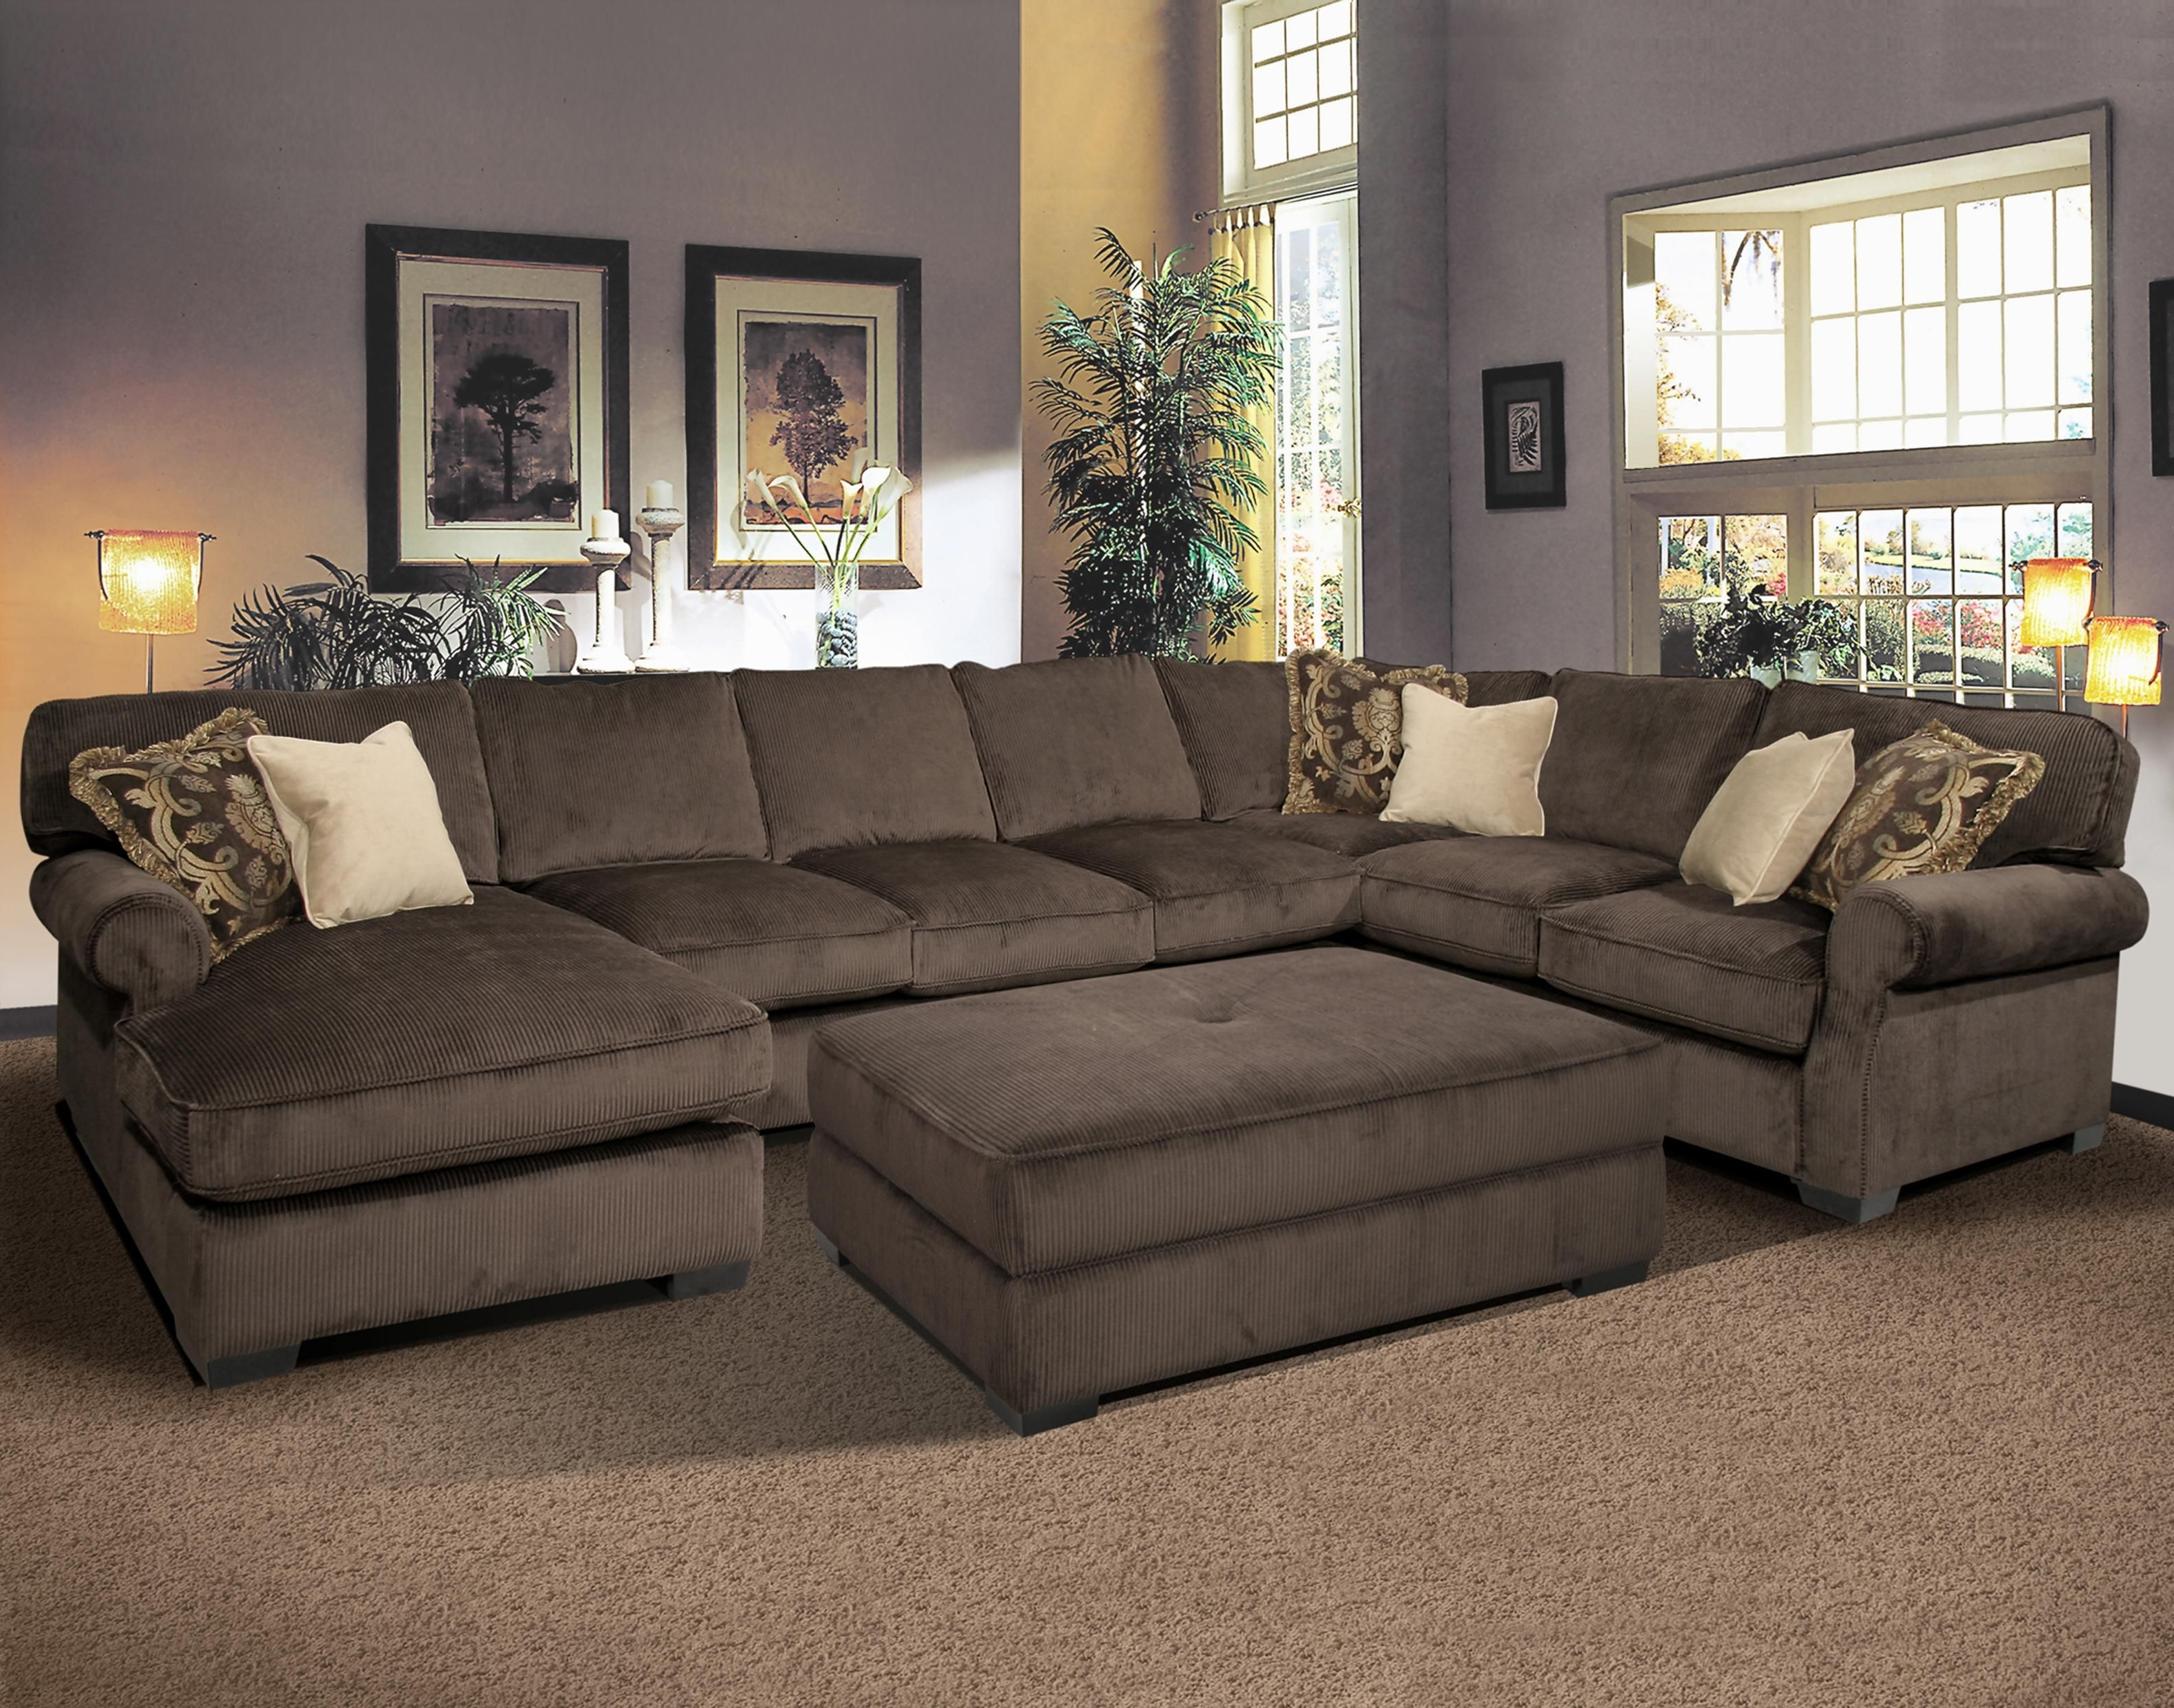 Deep Seating Sectional Sofas Intended For Latest Sofa : Extra Deep Seated Sectional Sofa Best Home Furniture Design (View 4 of 15)